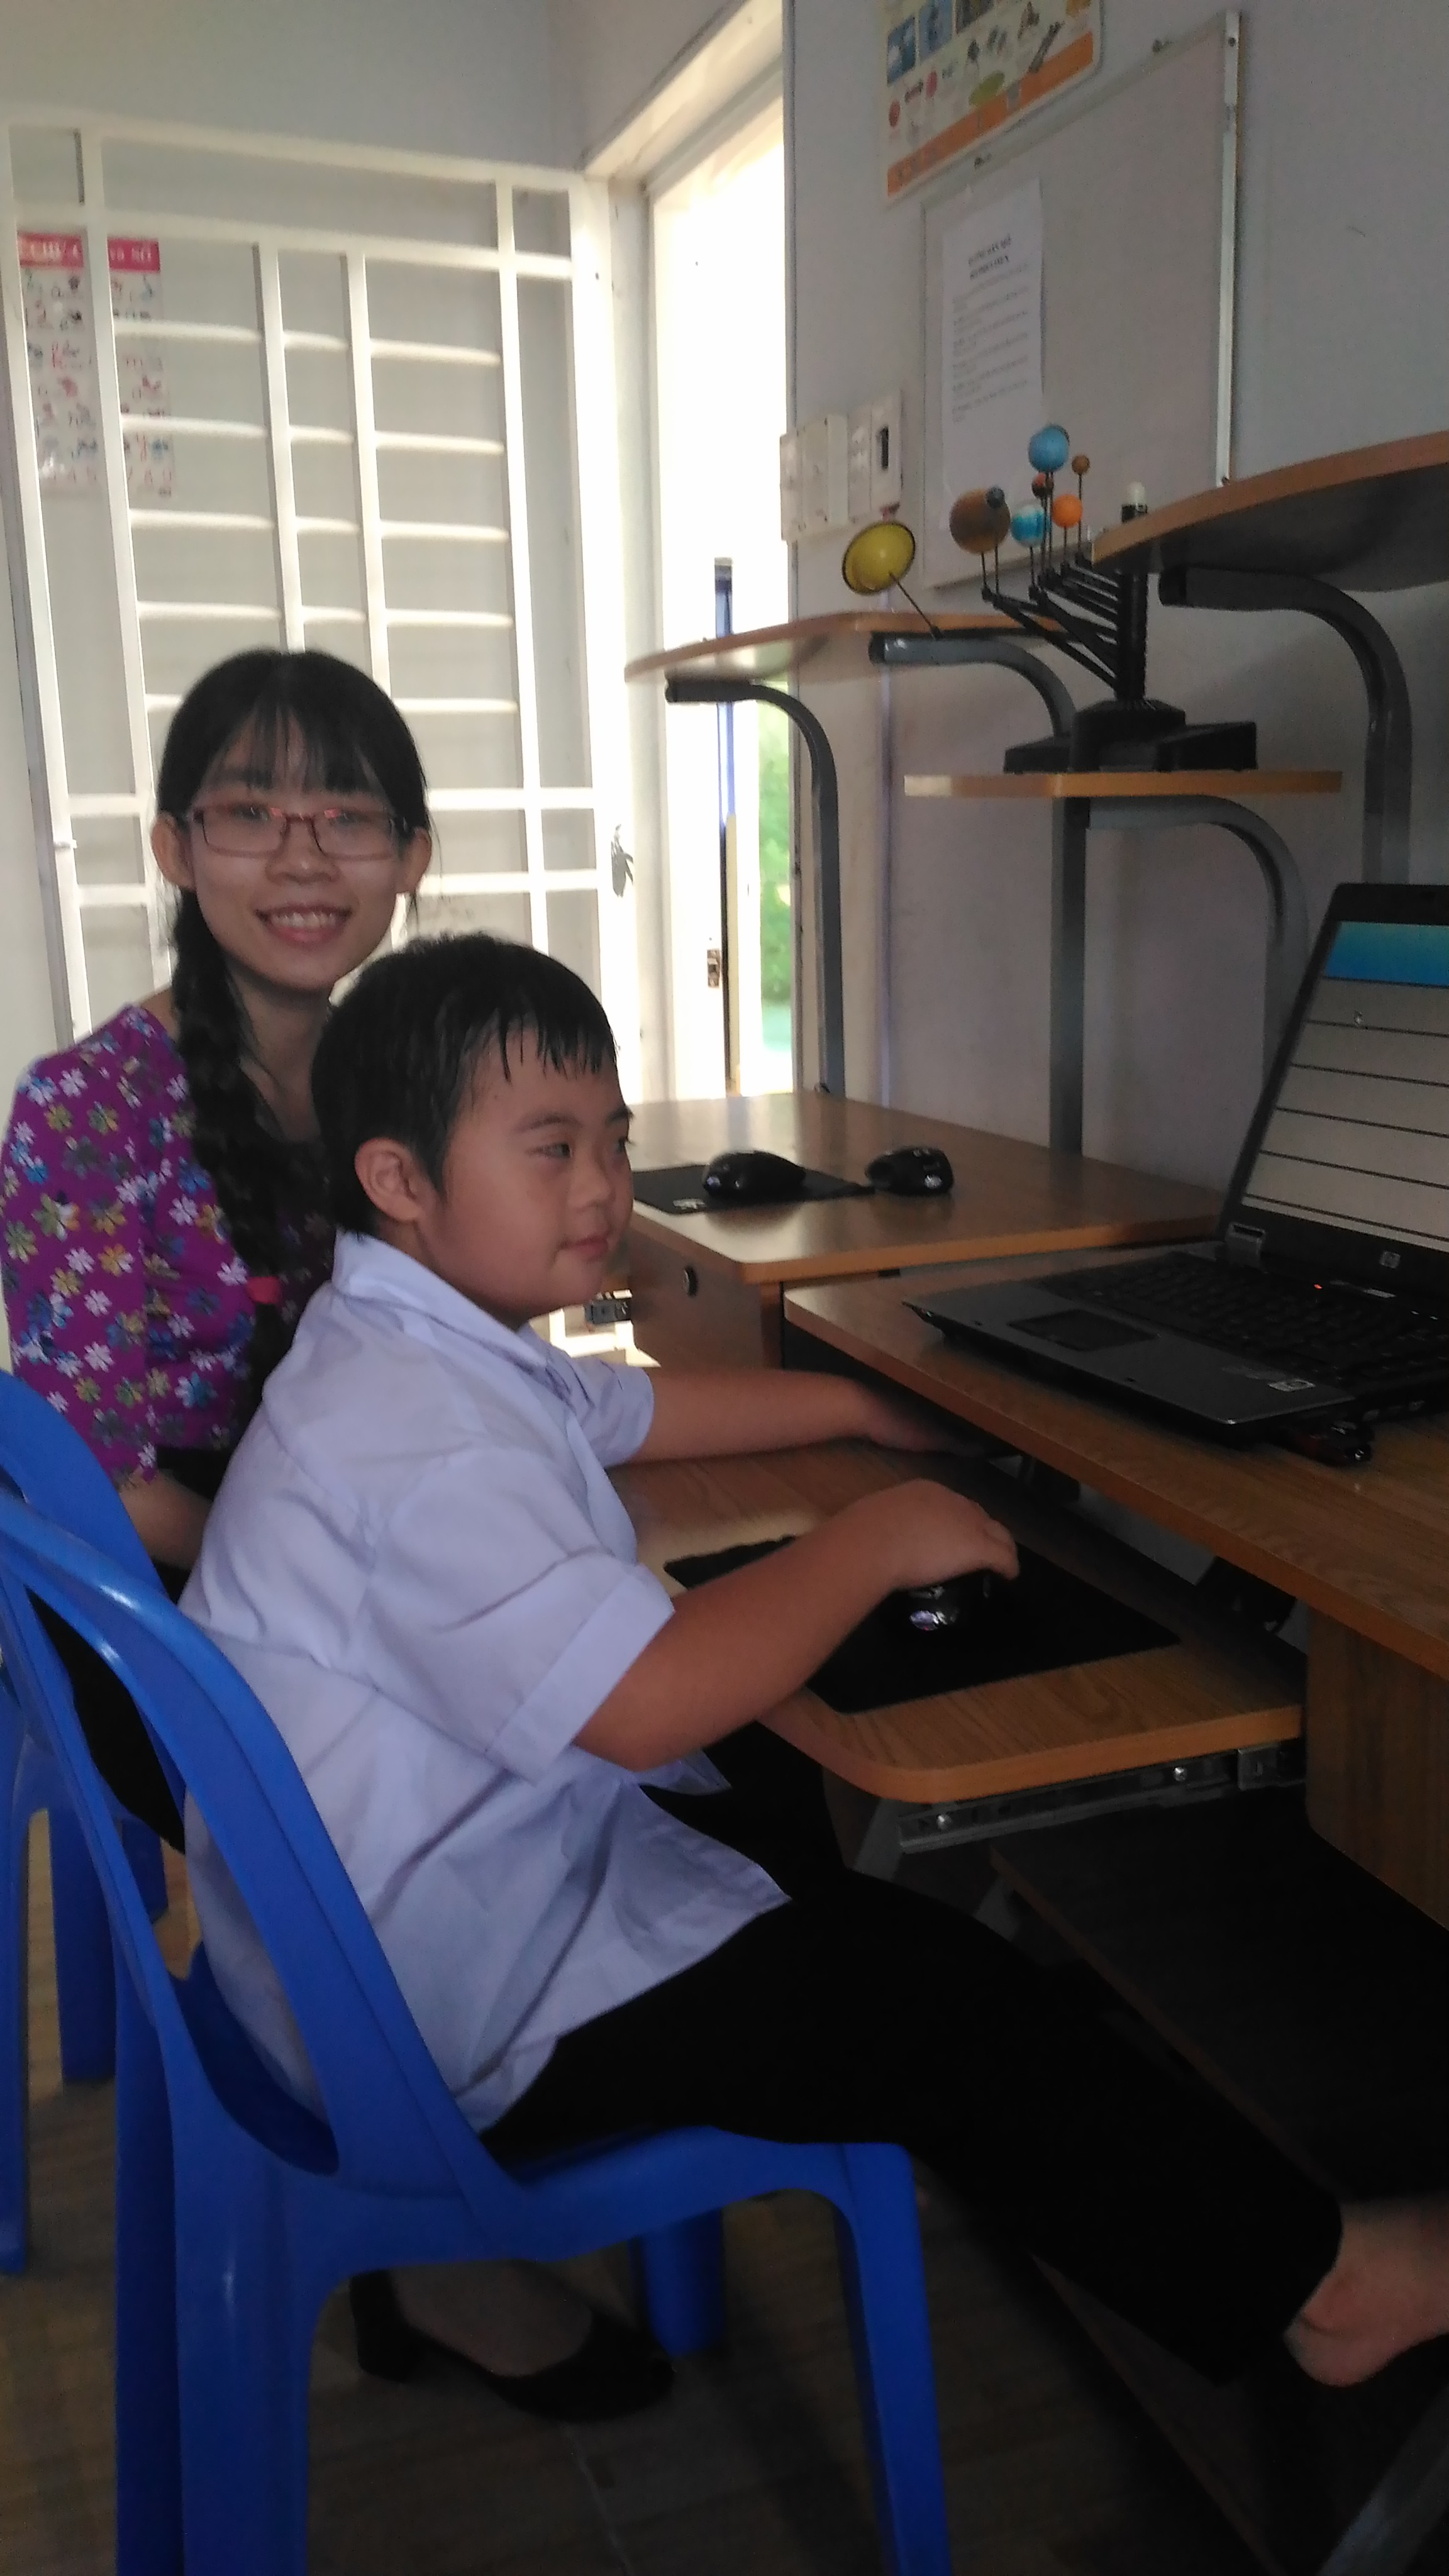 Tien took part in Doudoulinux Project in Long Hai